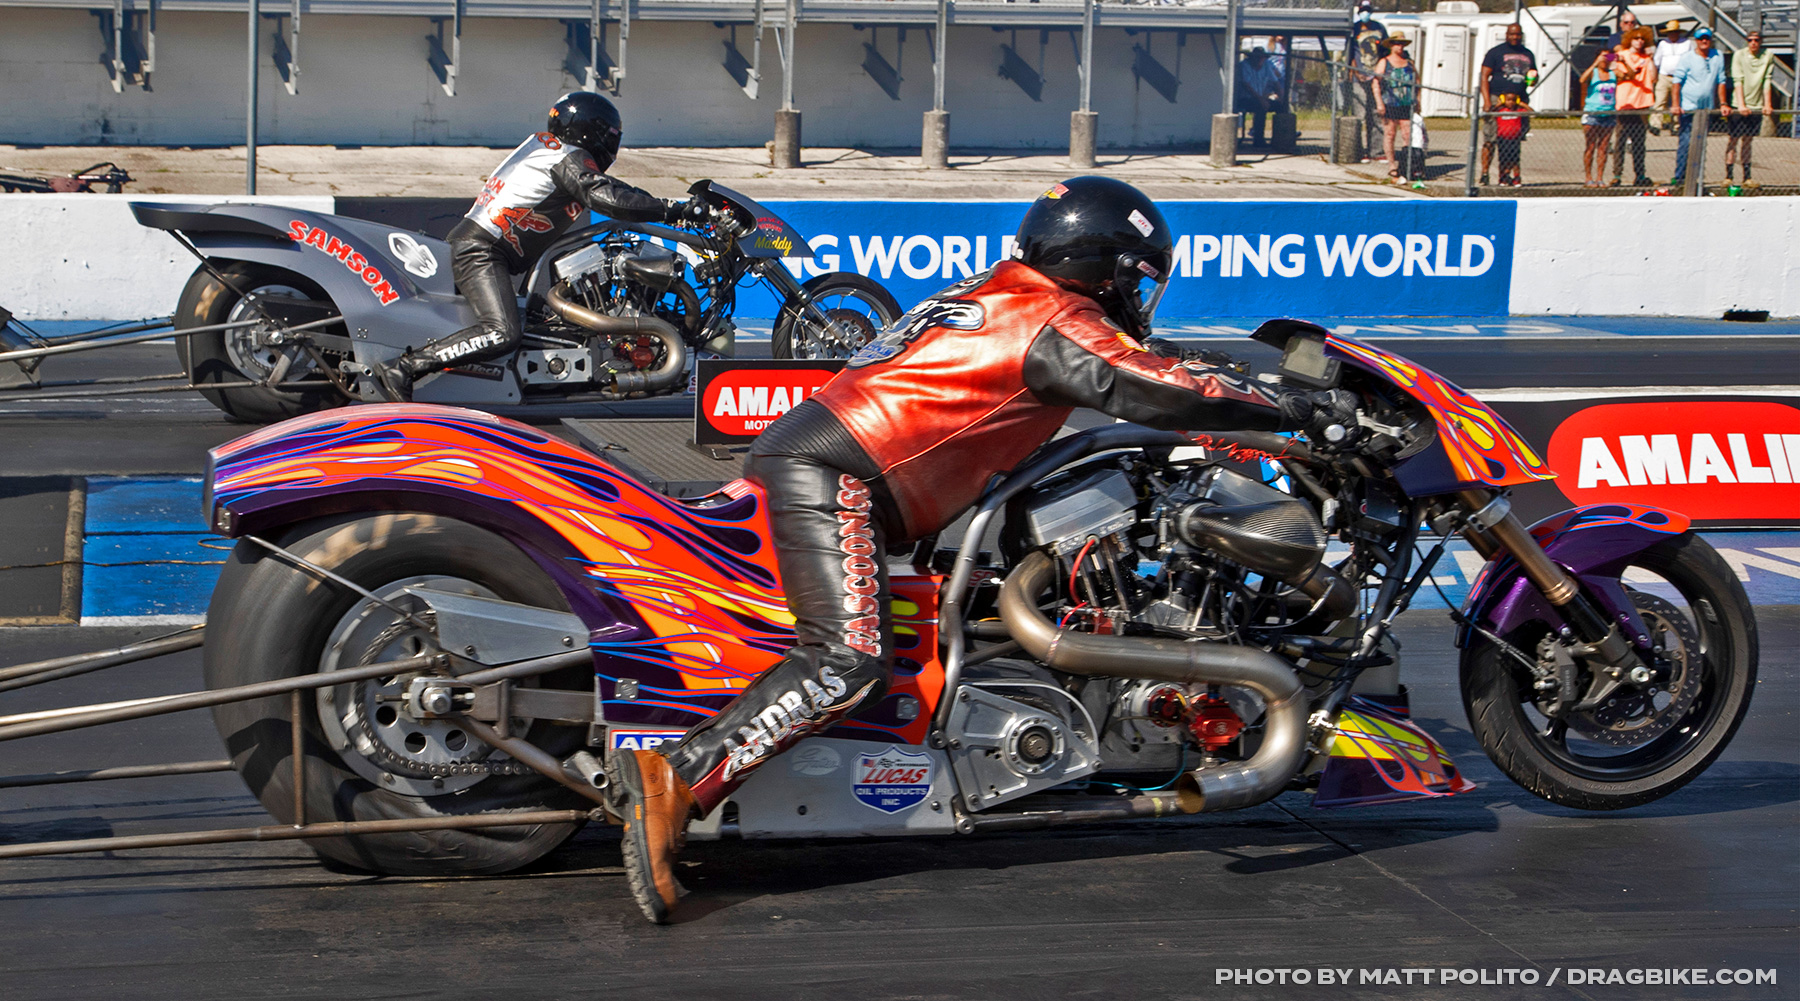 Randal Andras Top Fuel Harley